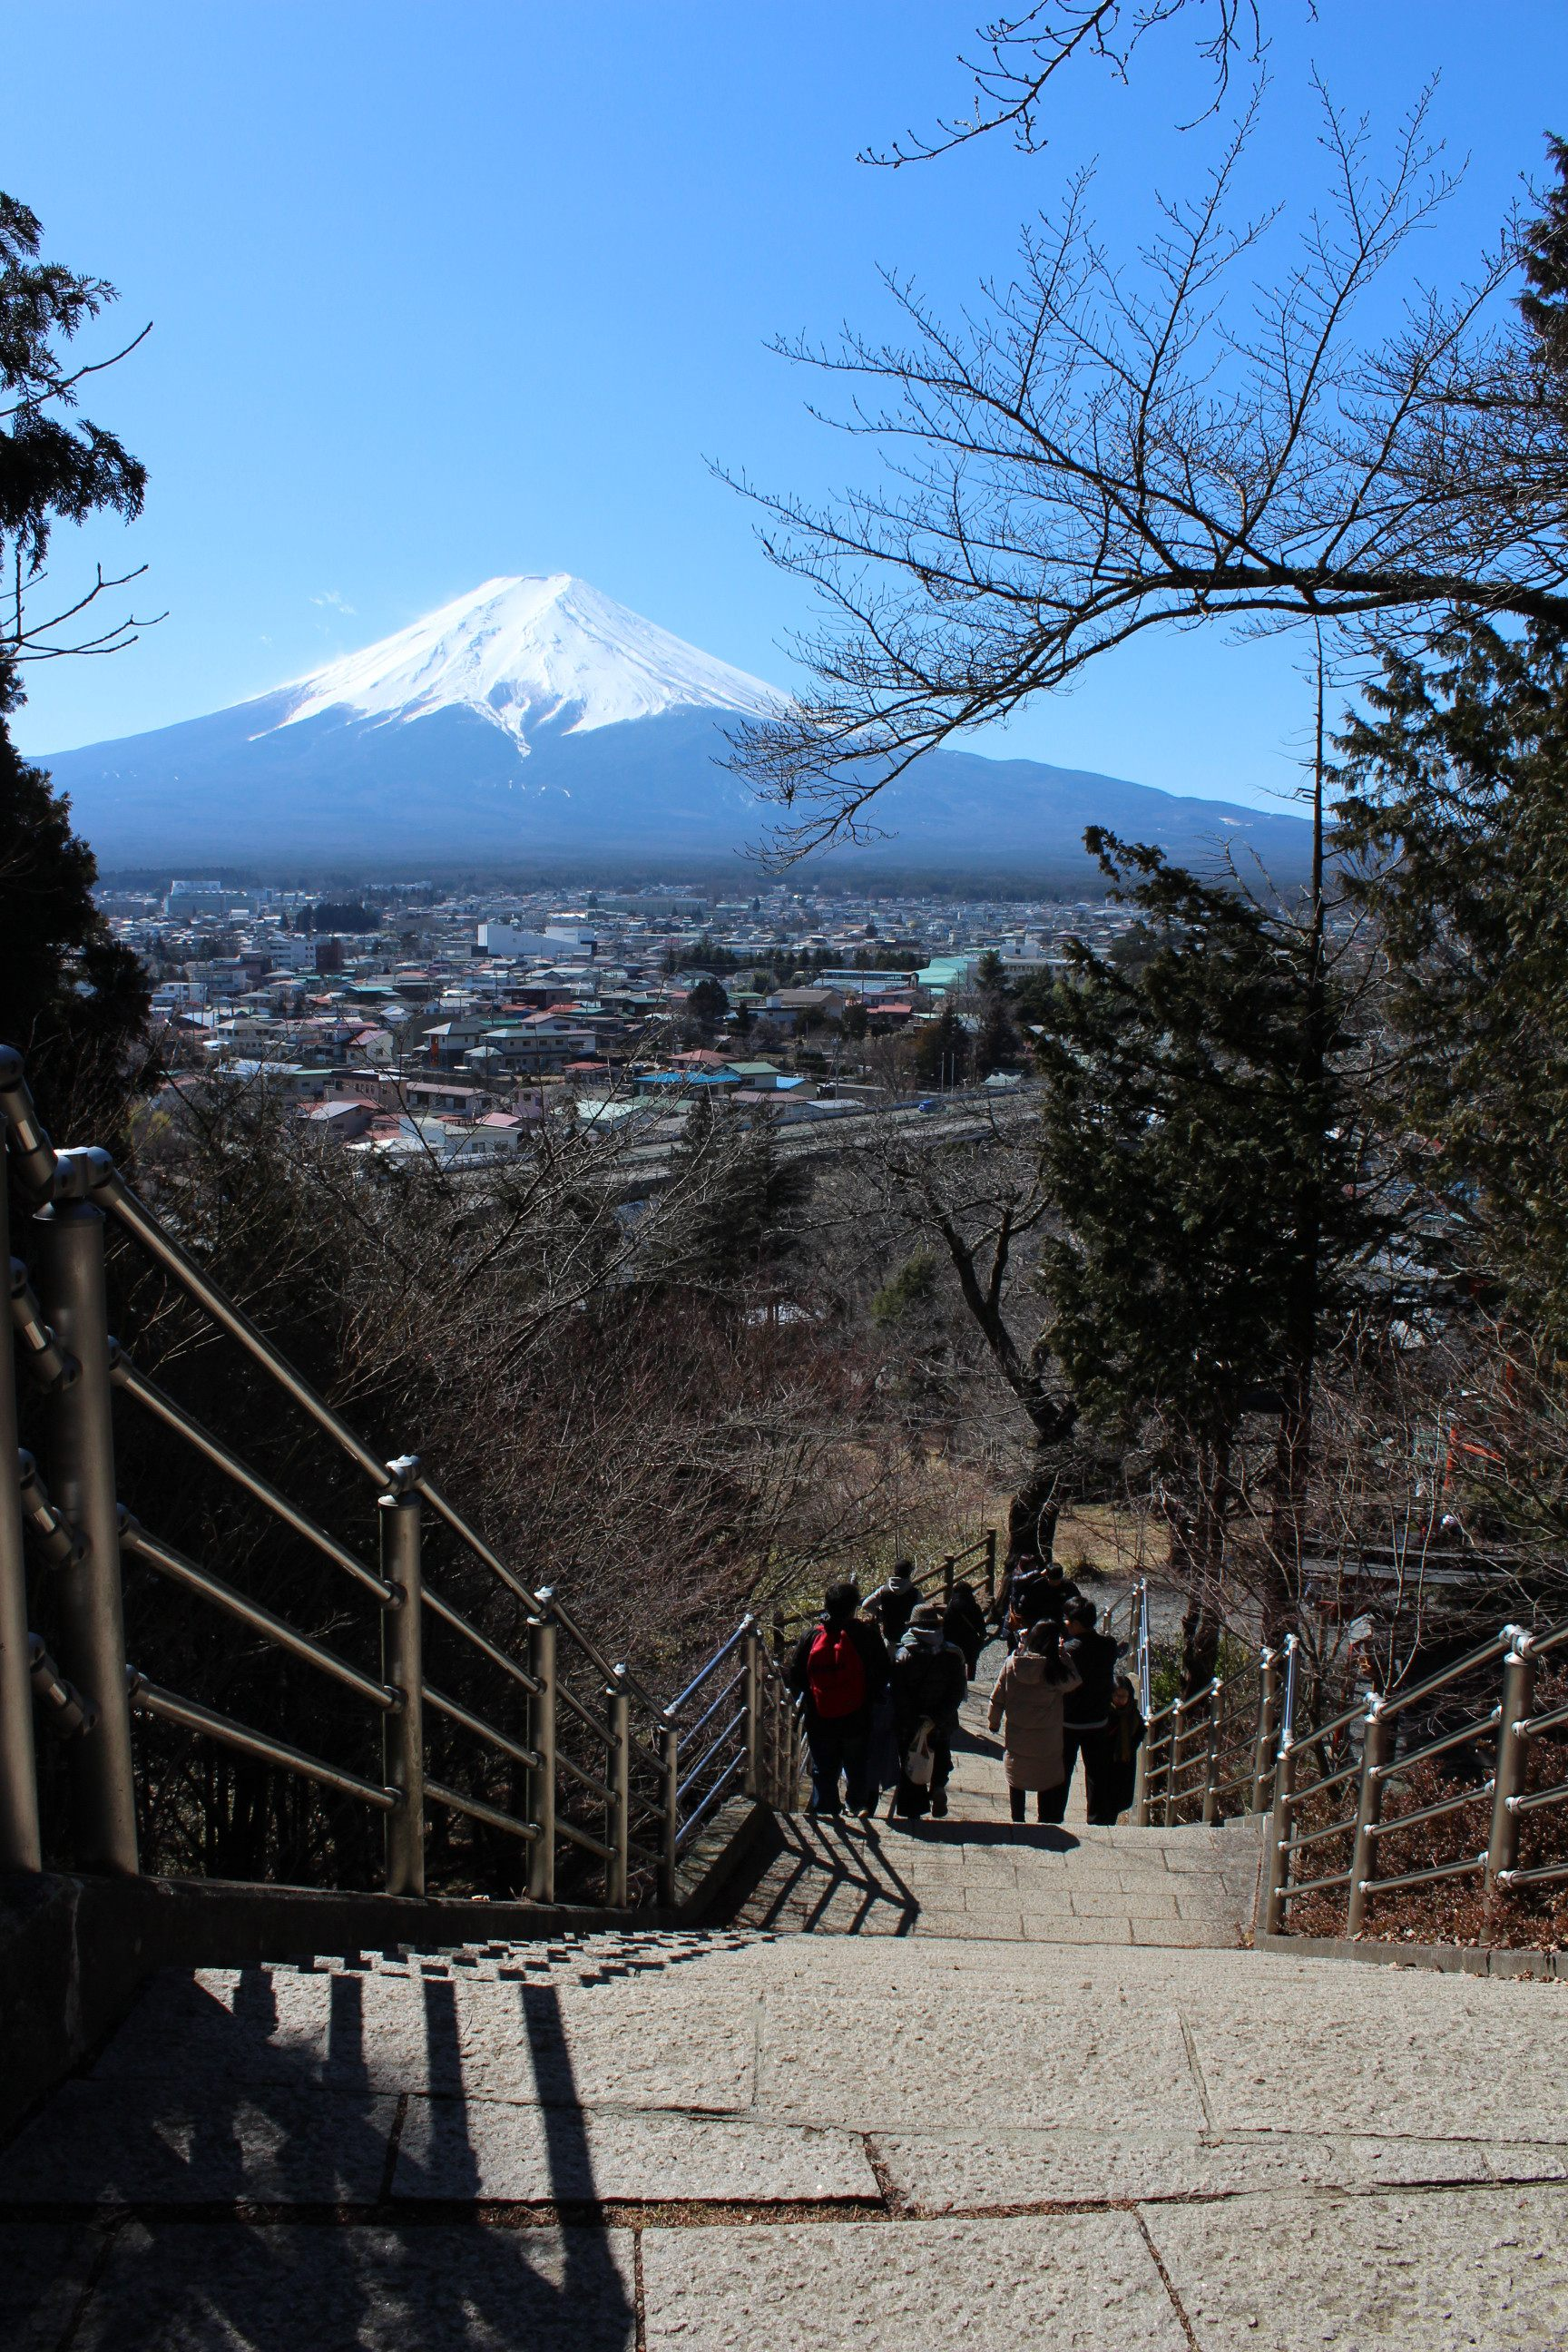 Looking at the Distant Mt. Fuji from the Steps